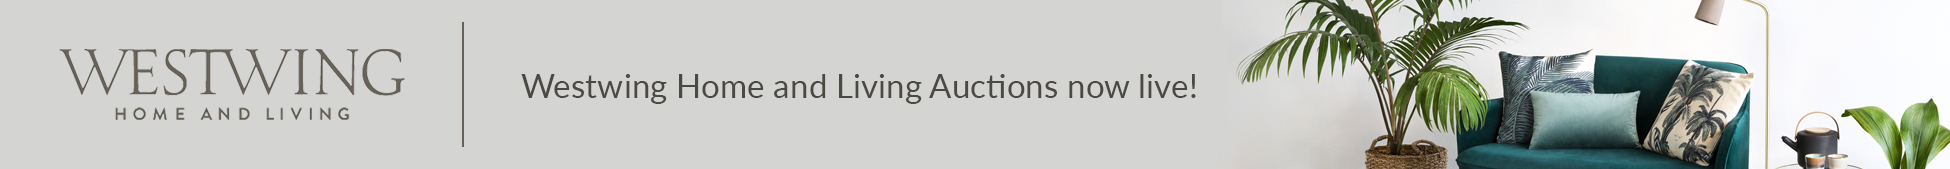 Westwing Home and Living Liquidation Auctions